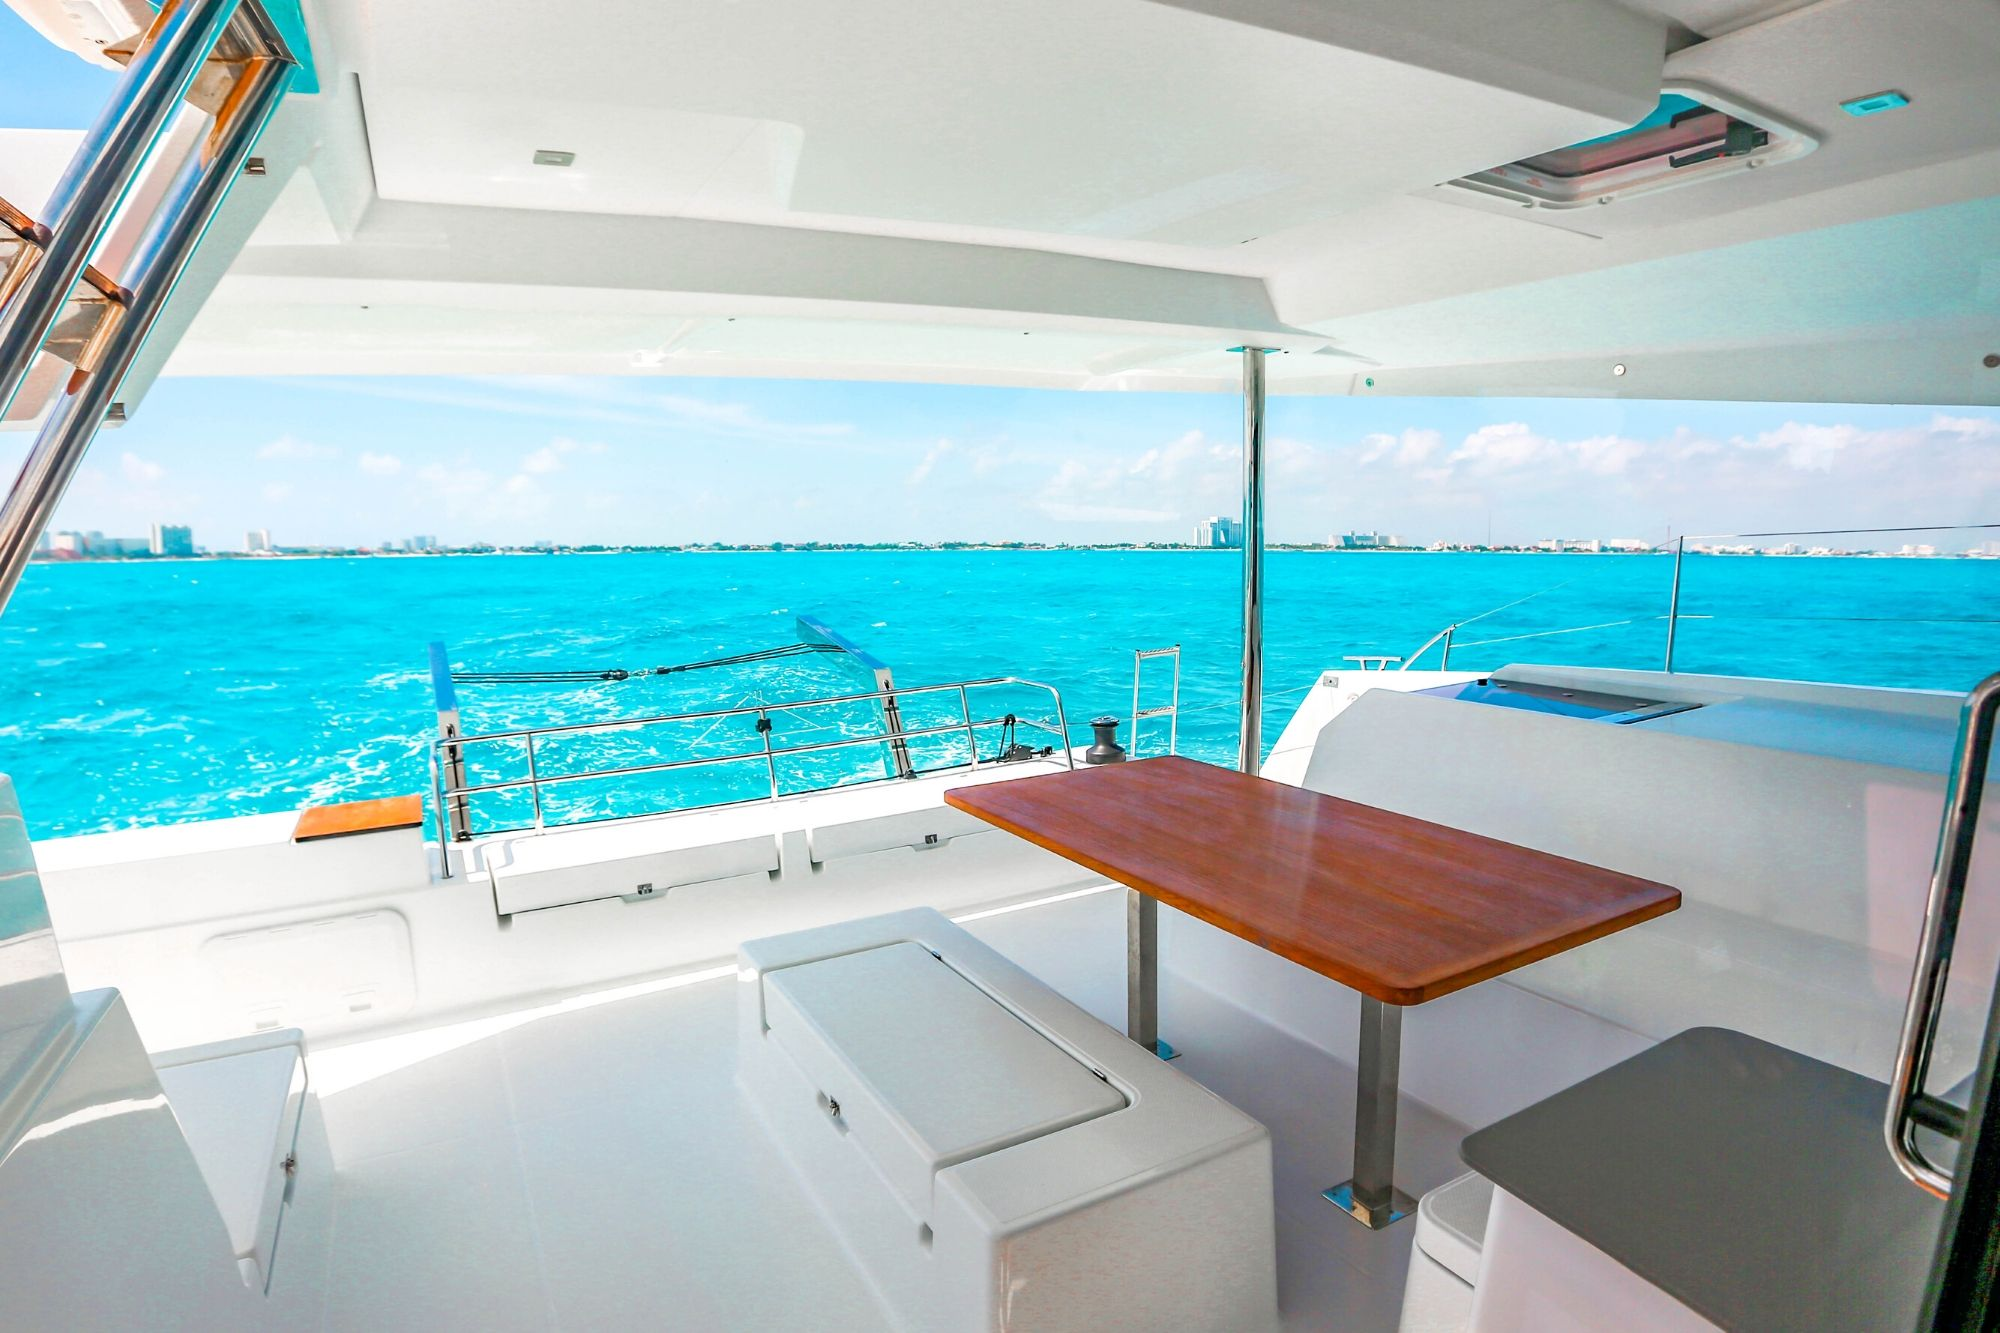 3 Private Isla Mujeres tour in catamaran - Victoria - Cancun Sailing